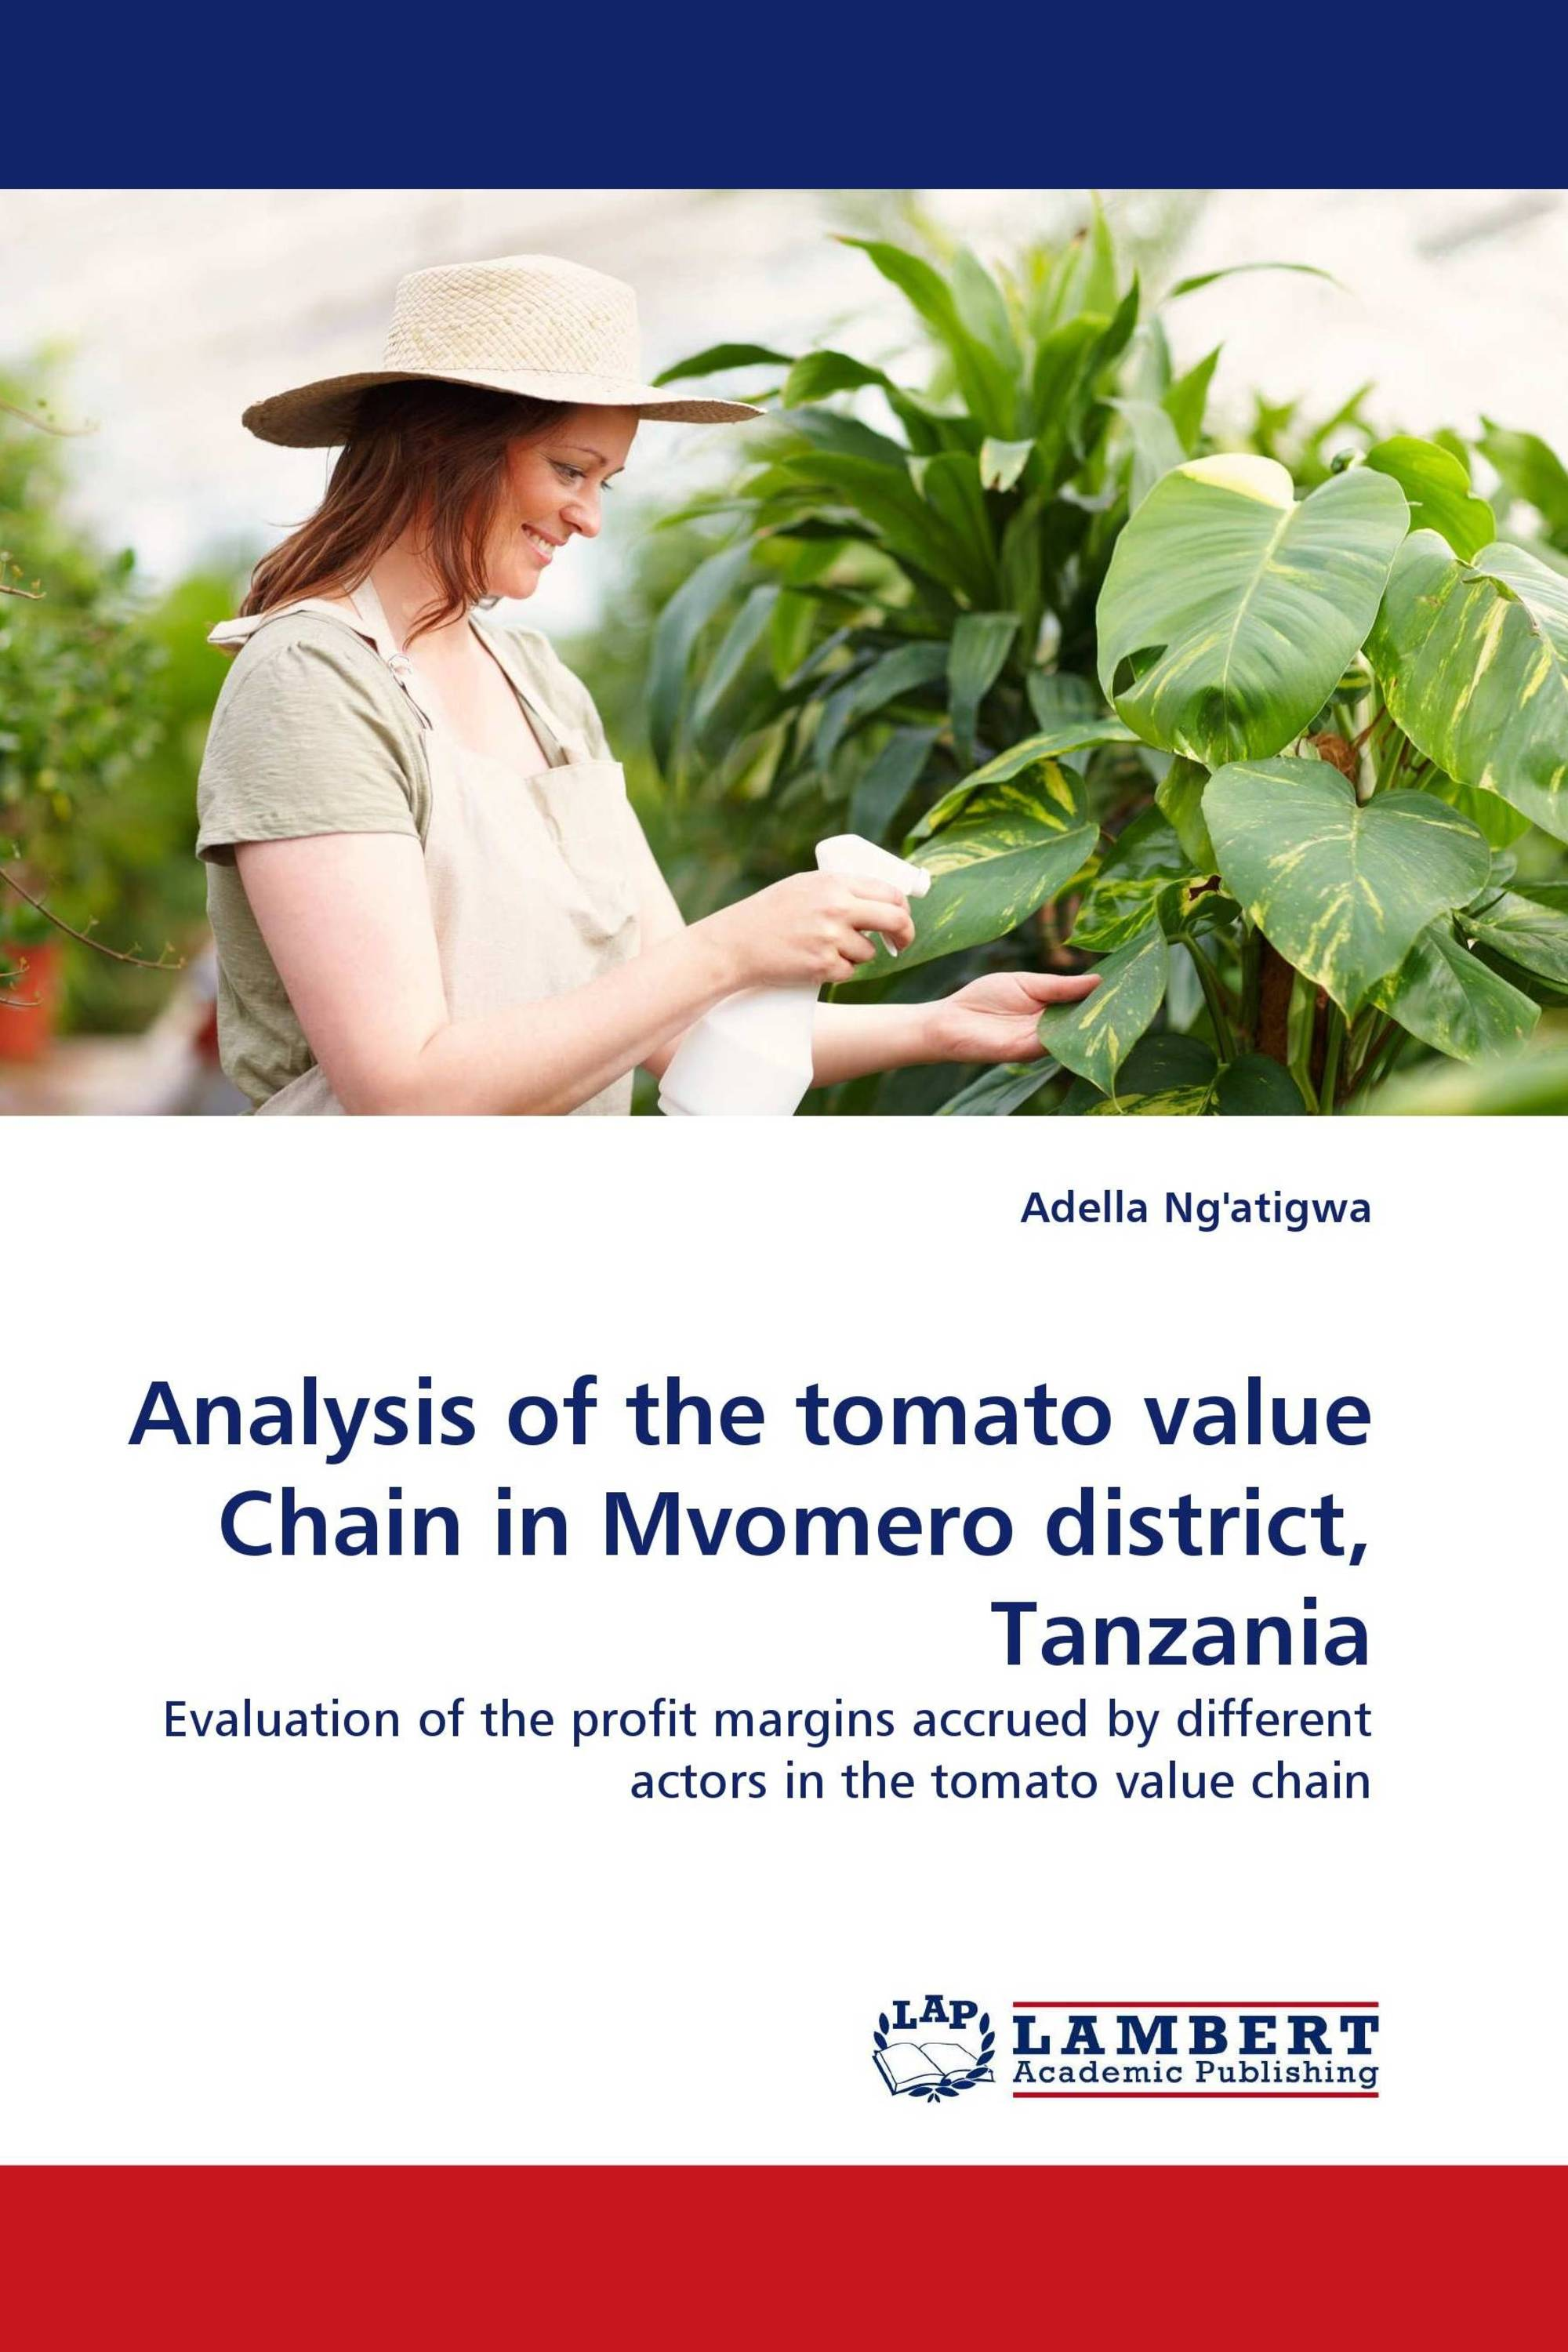 Analysis of the tomato value Chain in Mvomero district, Tanzania